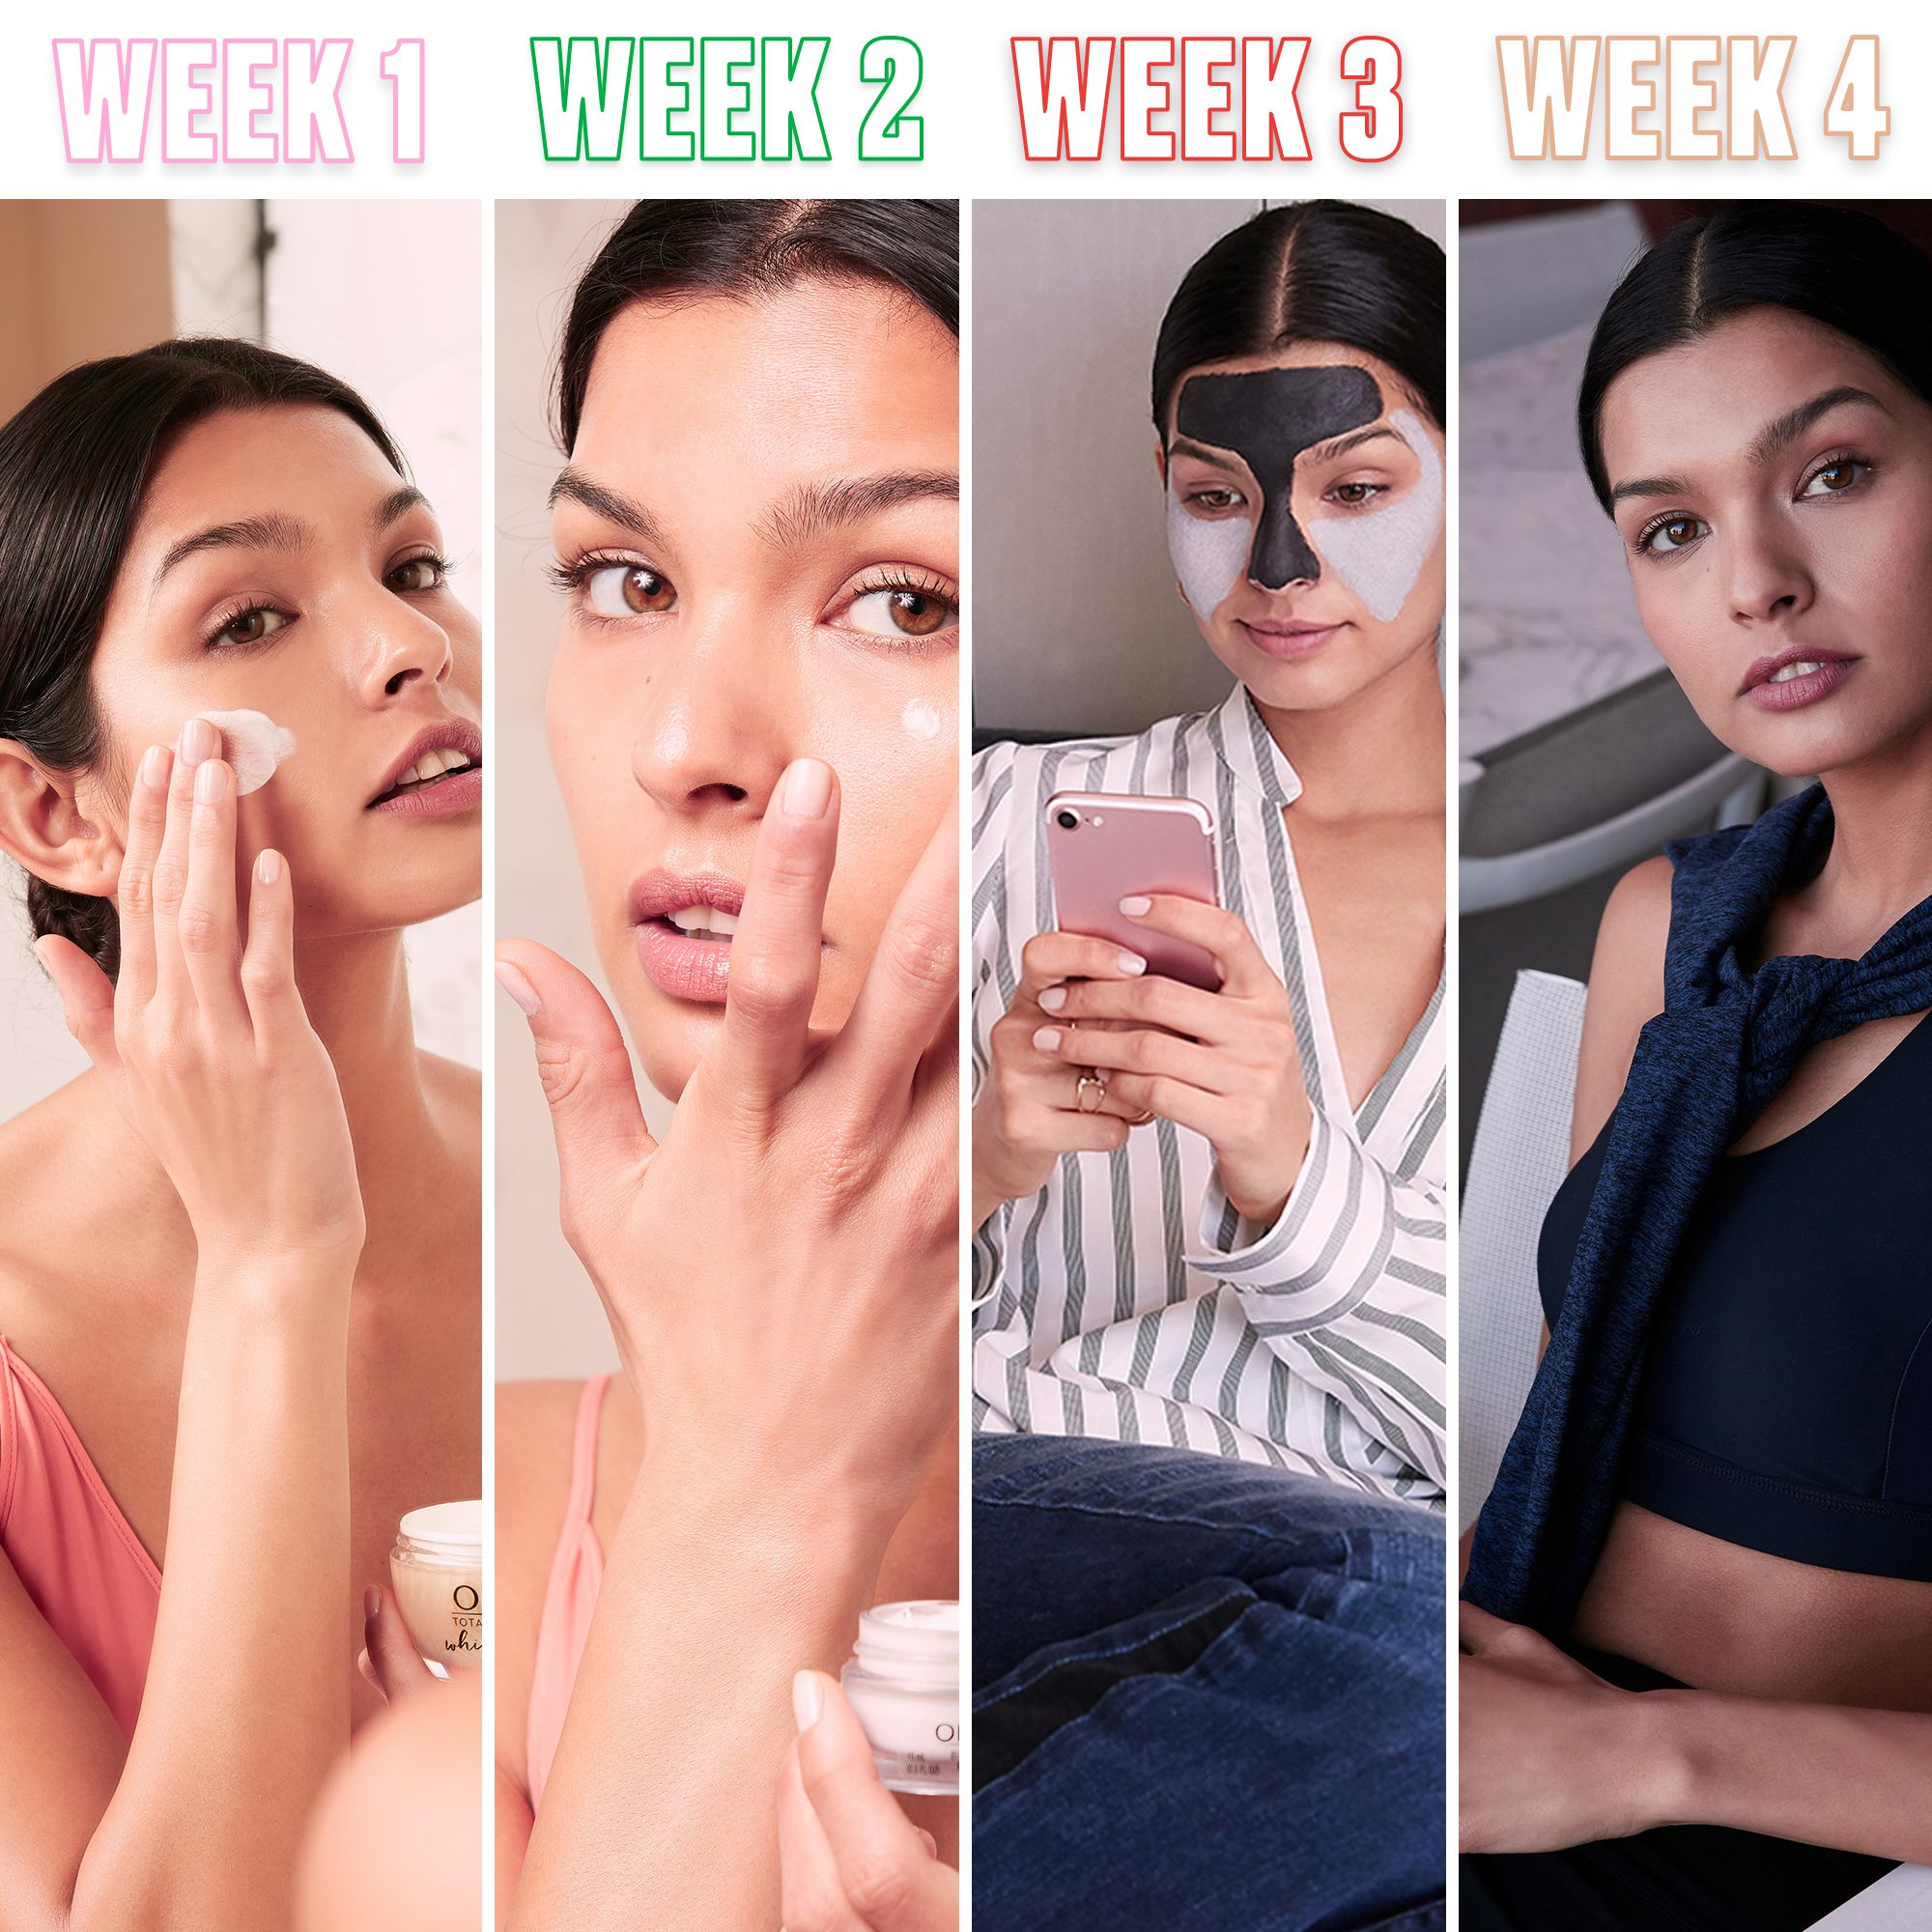 How to Transform Your Skin in 12 Weeks, According to Experts